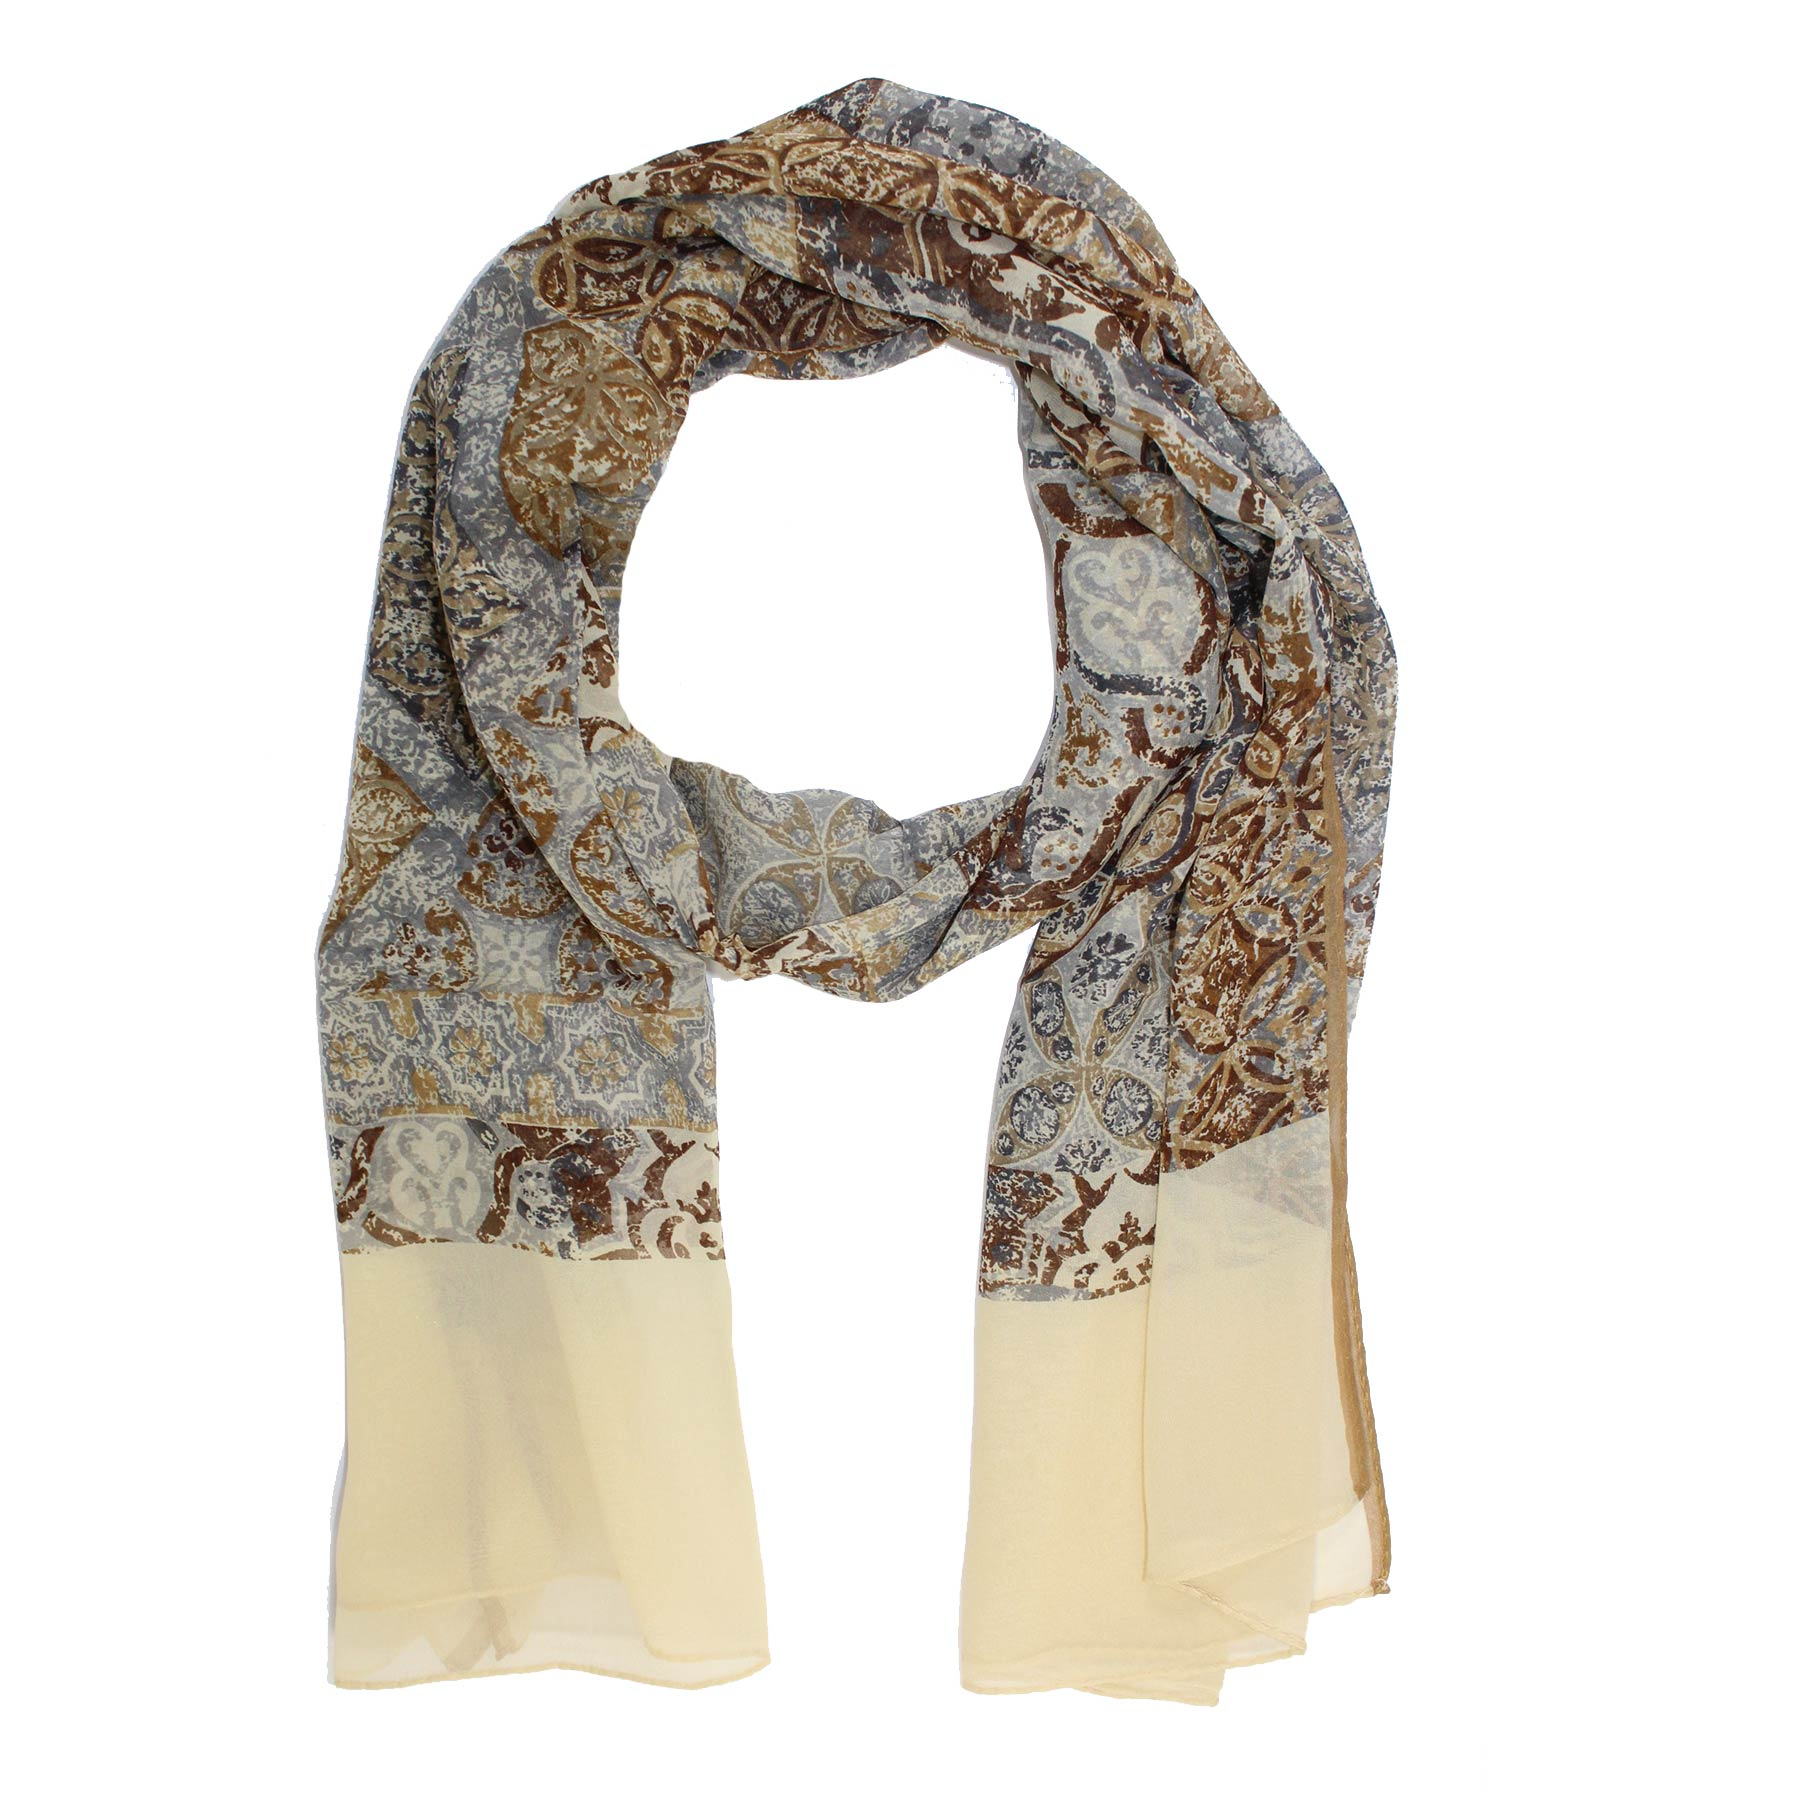 Guess Scarf Brown Beige Gray Design